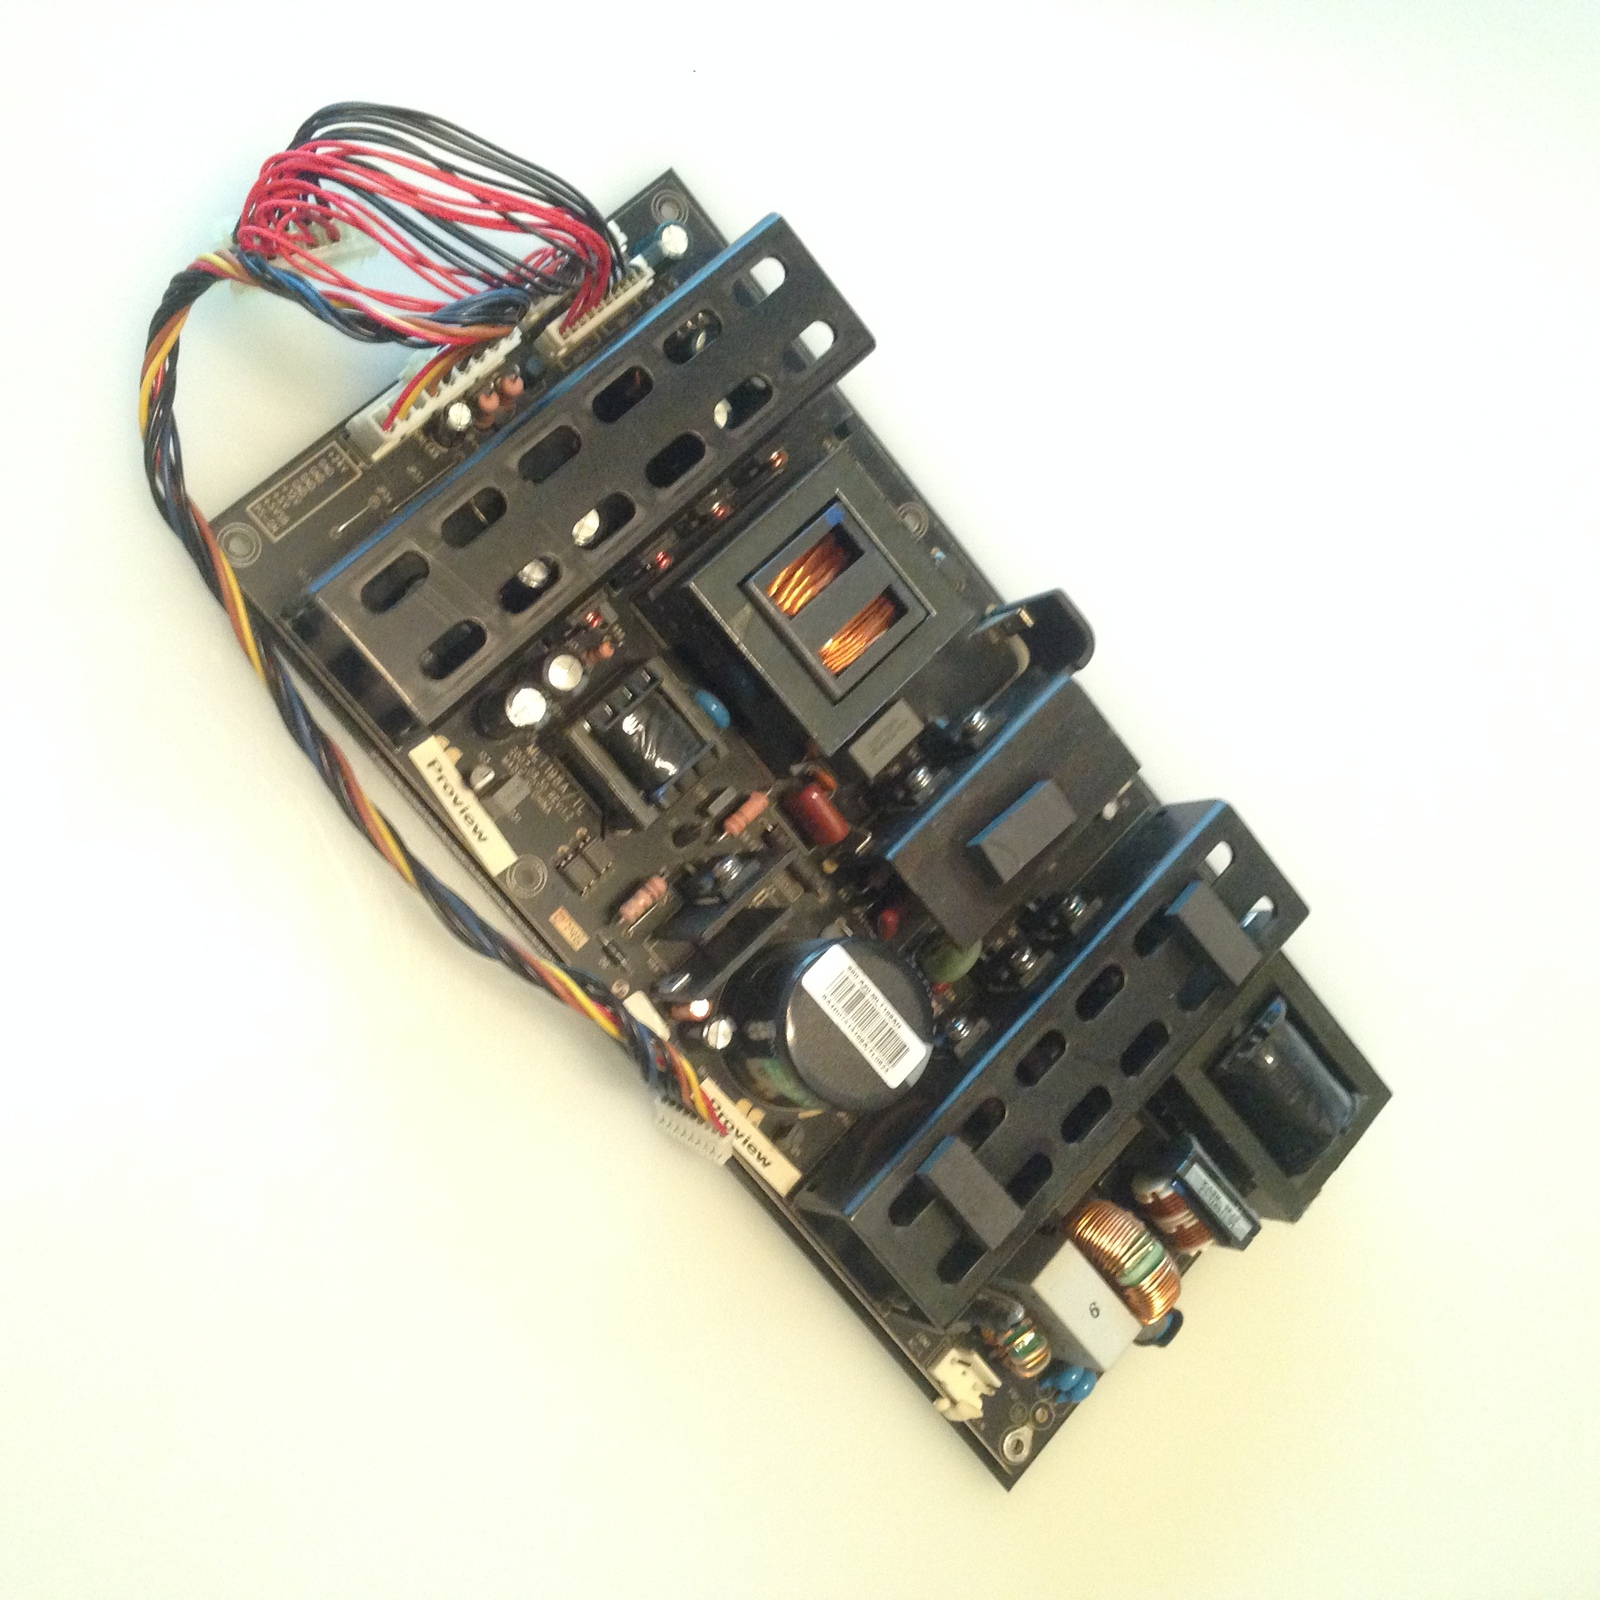 860-AZ0-MLT198BAH Samsung Insignia TV Power Supply Board Assembly - $79.00